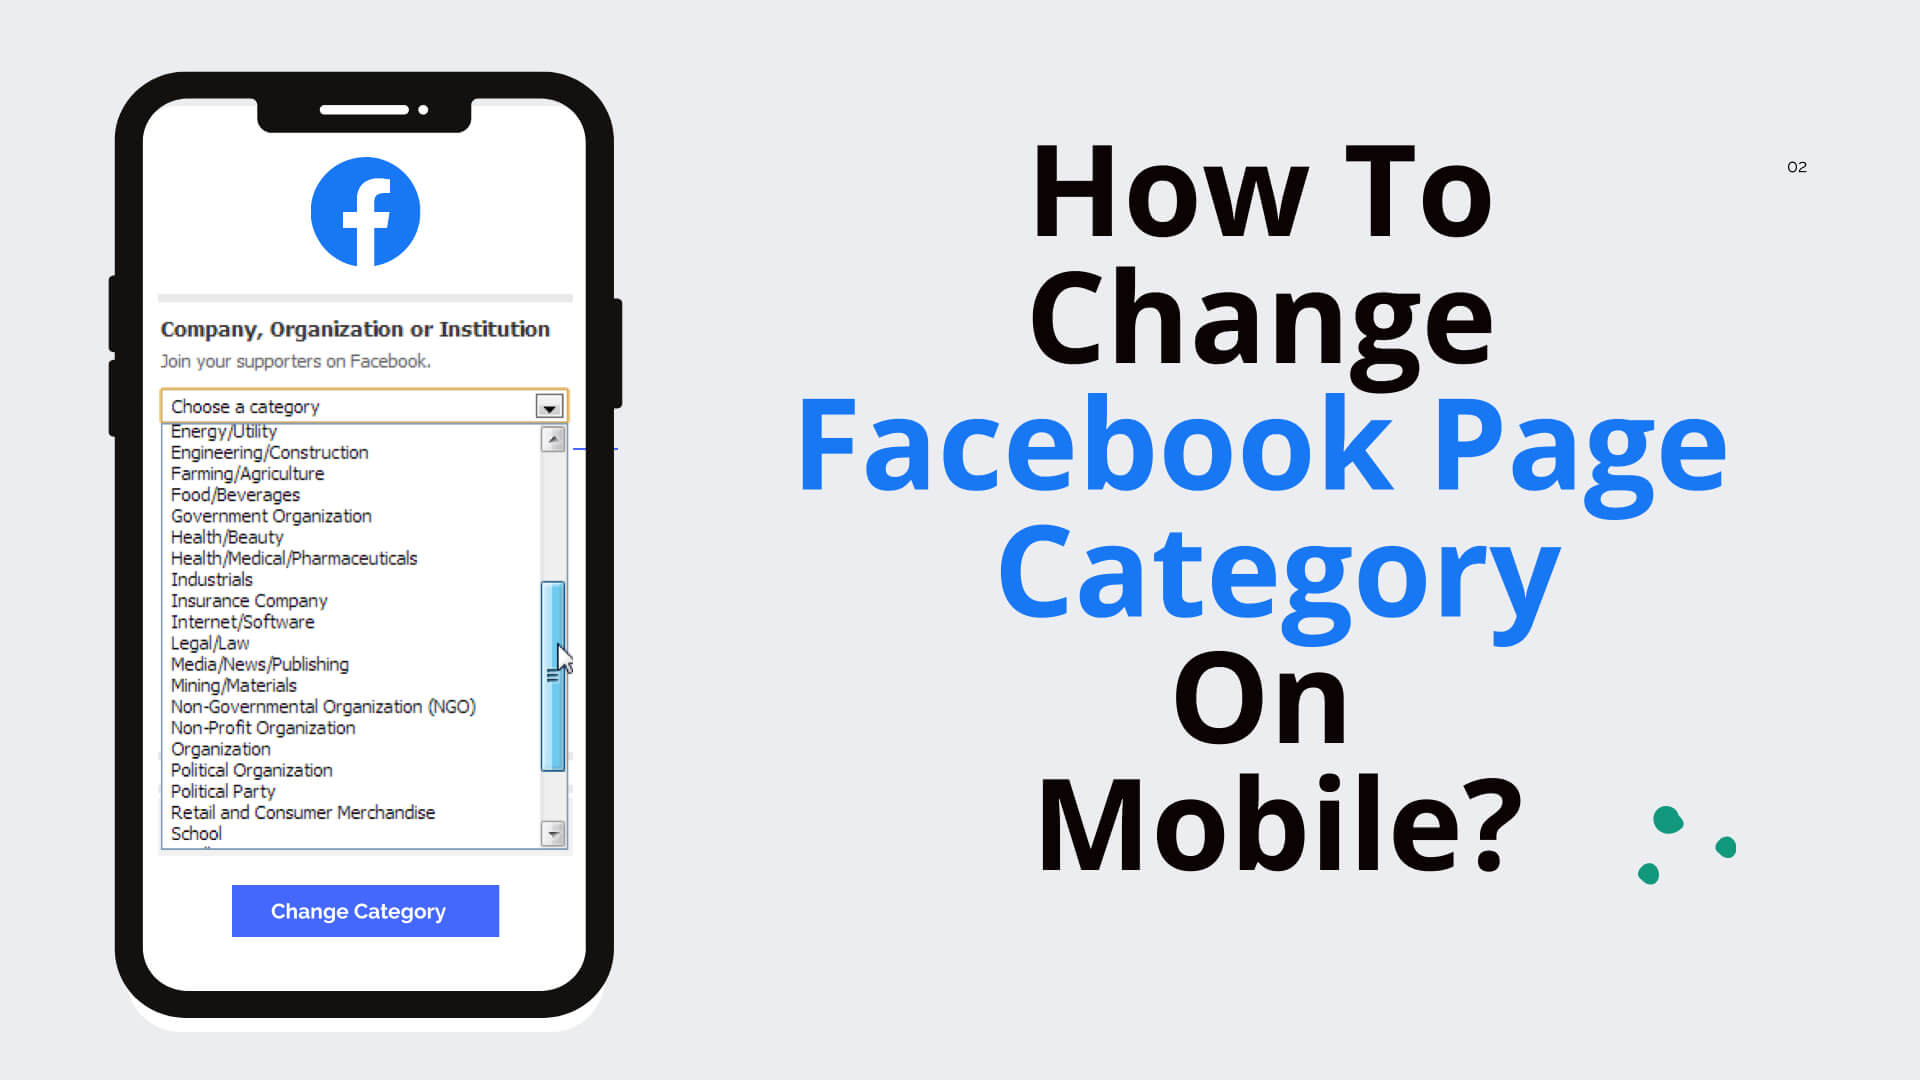 How To Change Facebook Page Category On Mobile